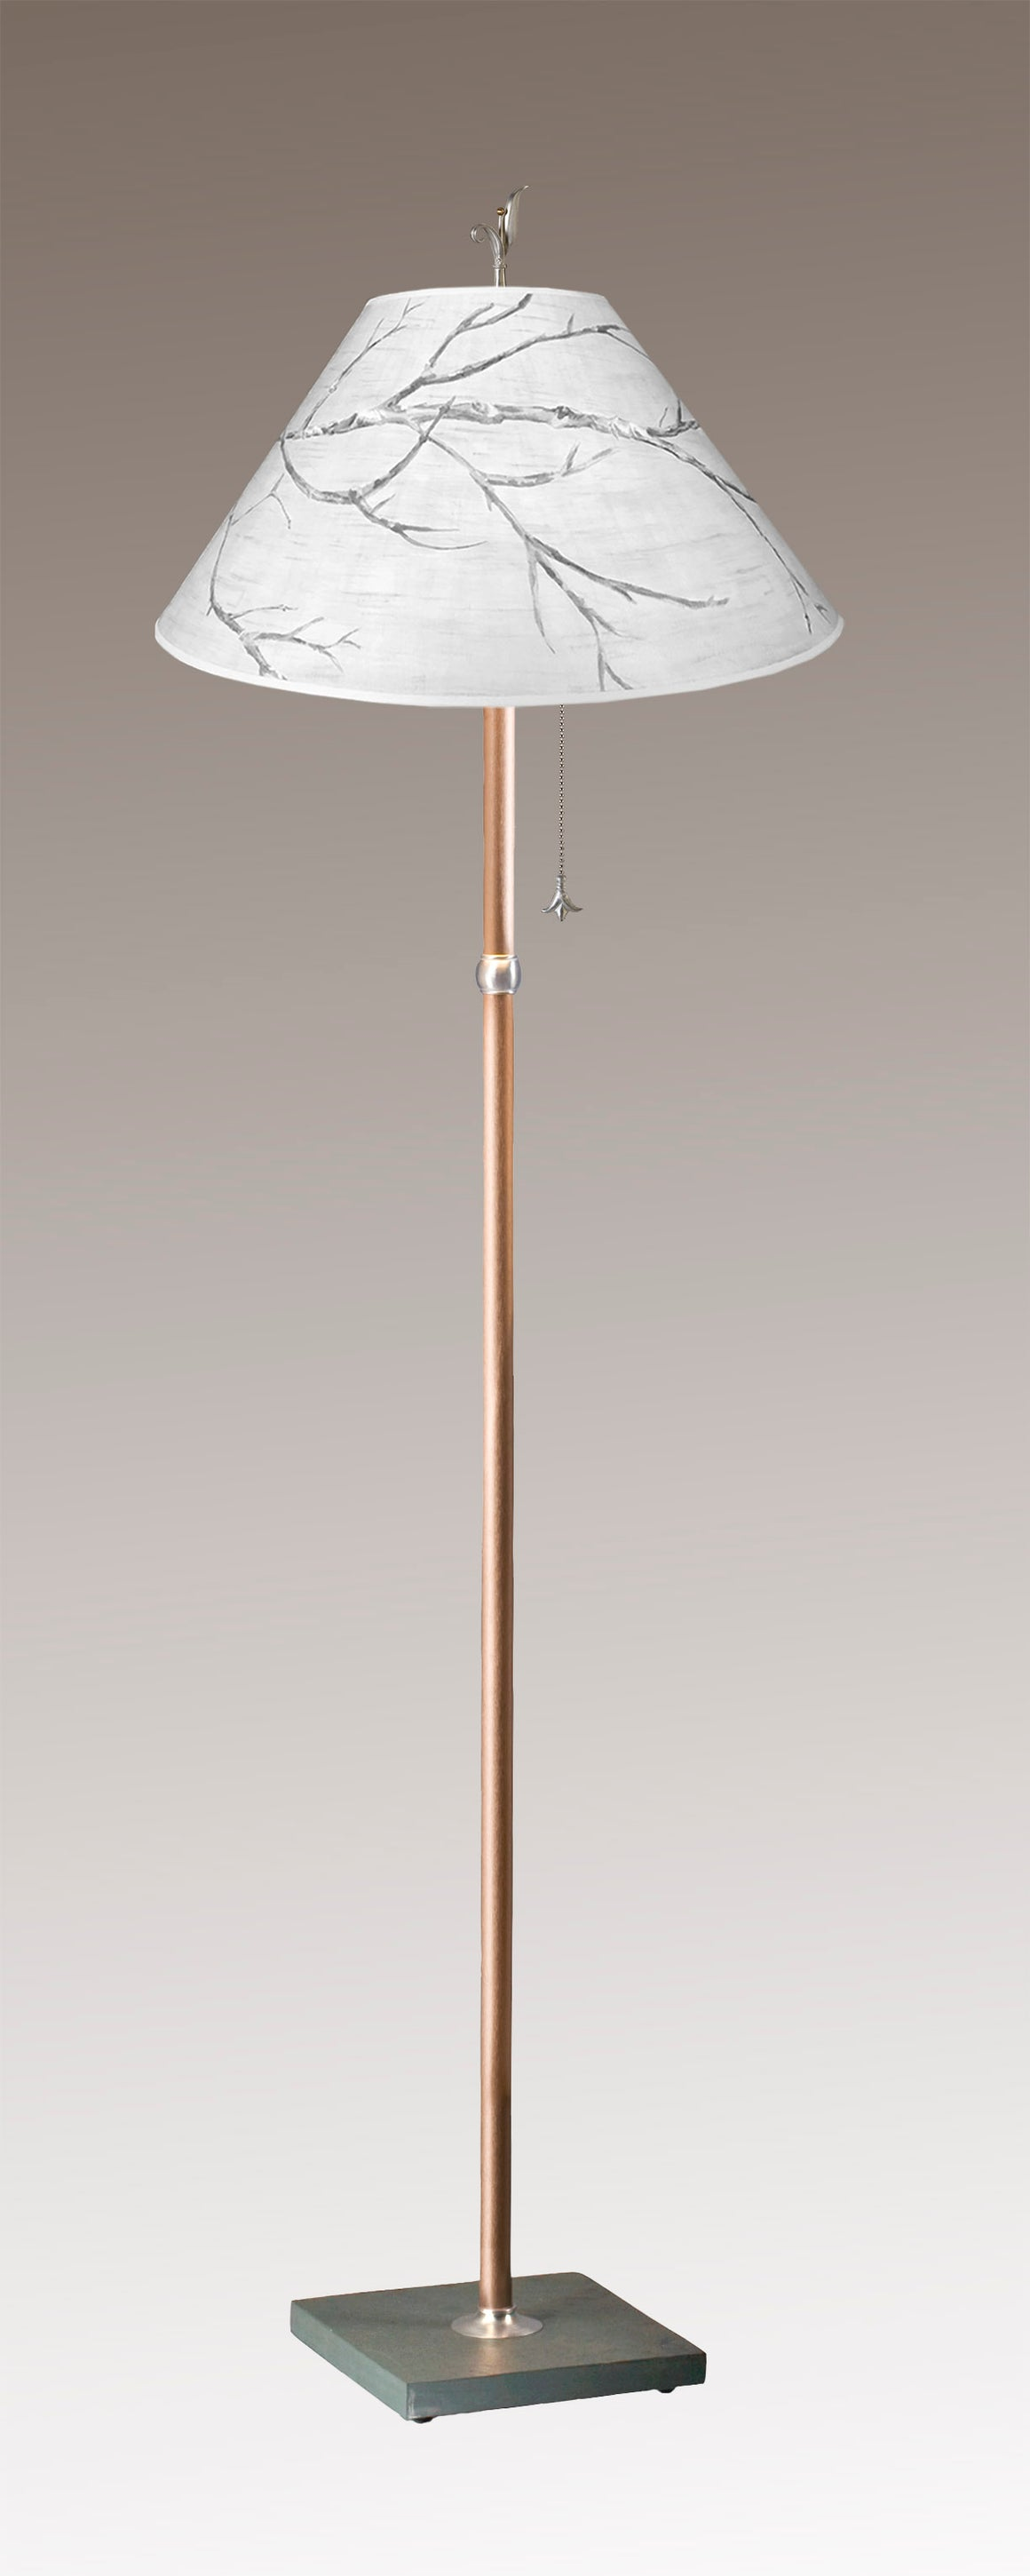 Copper Floor Lamp on Vermont Slate Base with Large Conical Shade in Sweeping Branch